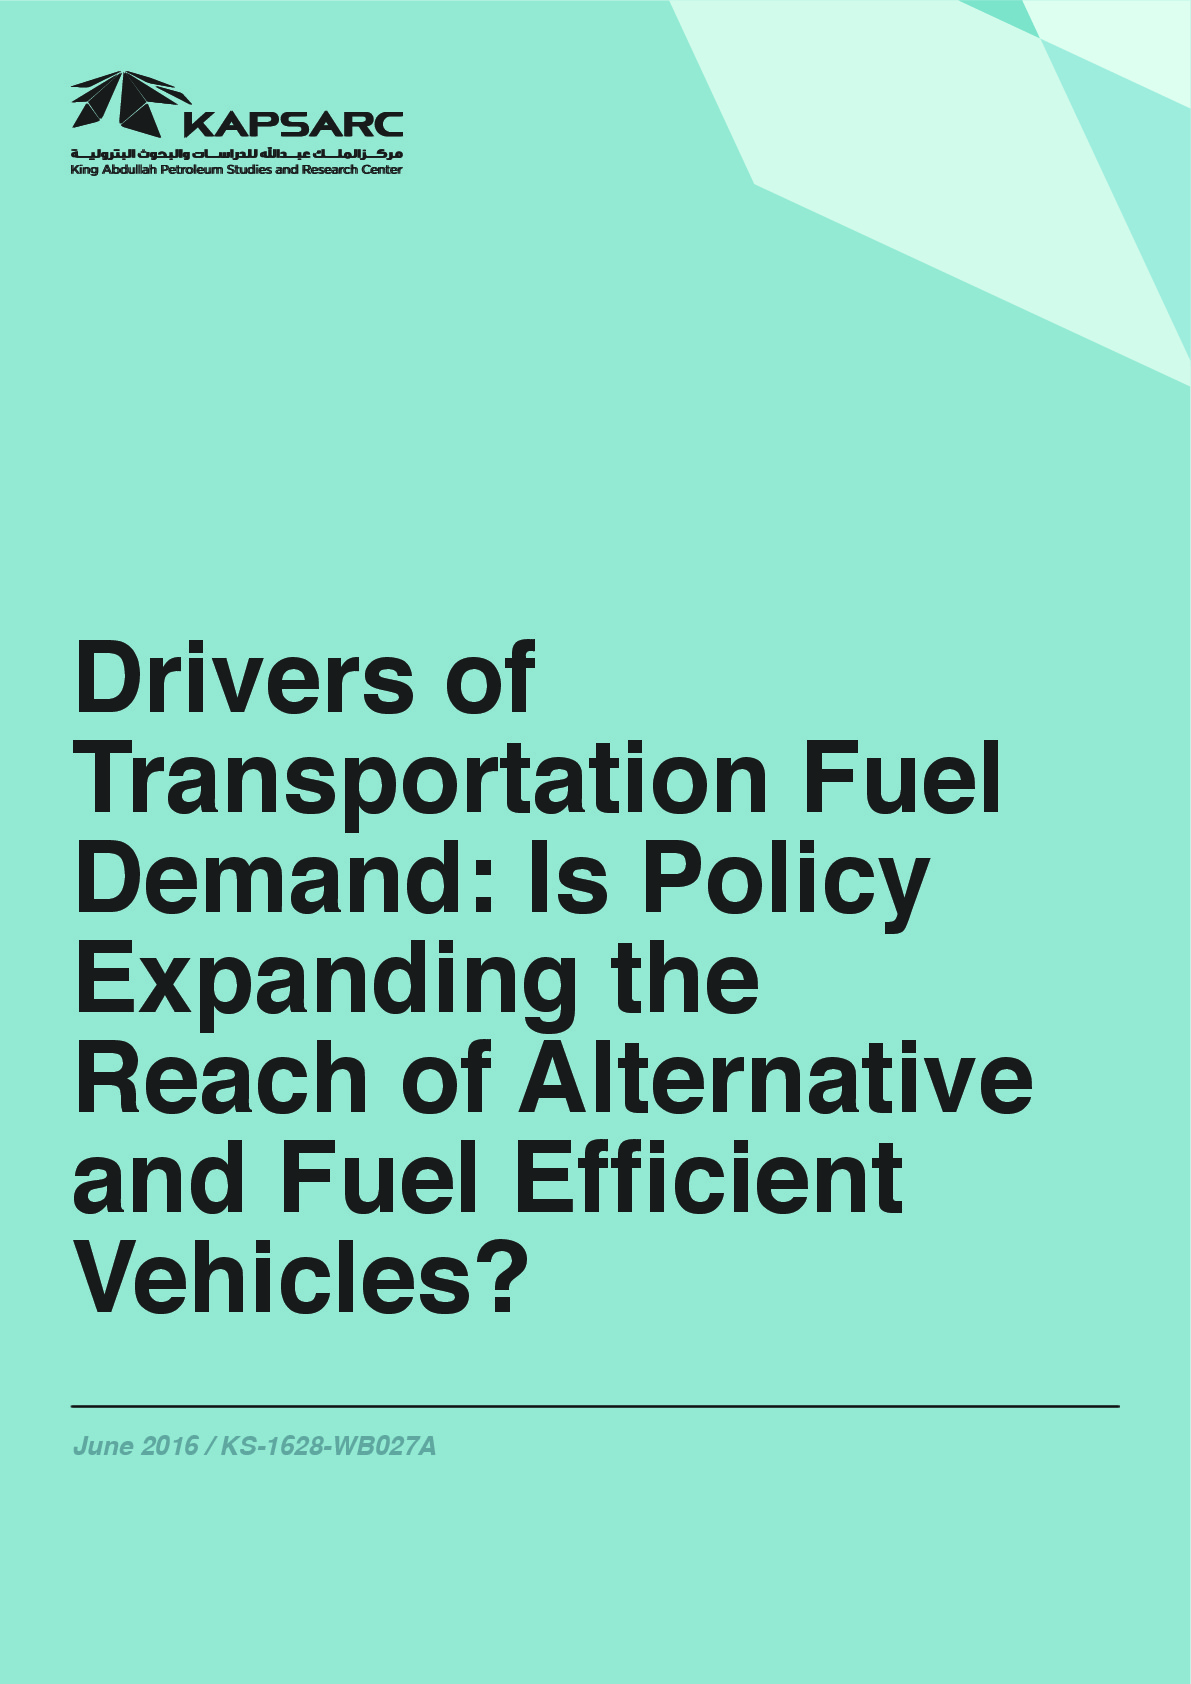 Drivers of Transportation Fuel Demand: Is Policy Expanding the Reach of Alternative and Fuel Efficient Vehicles?